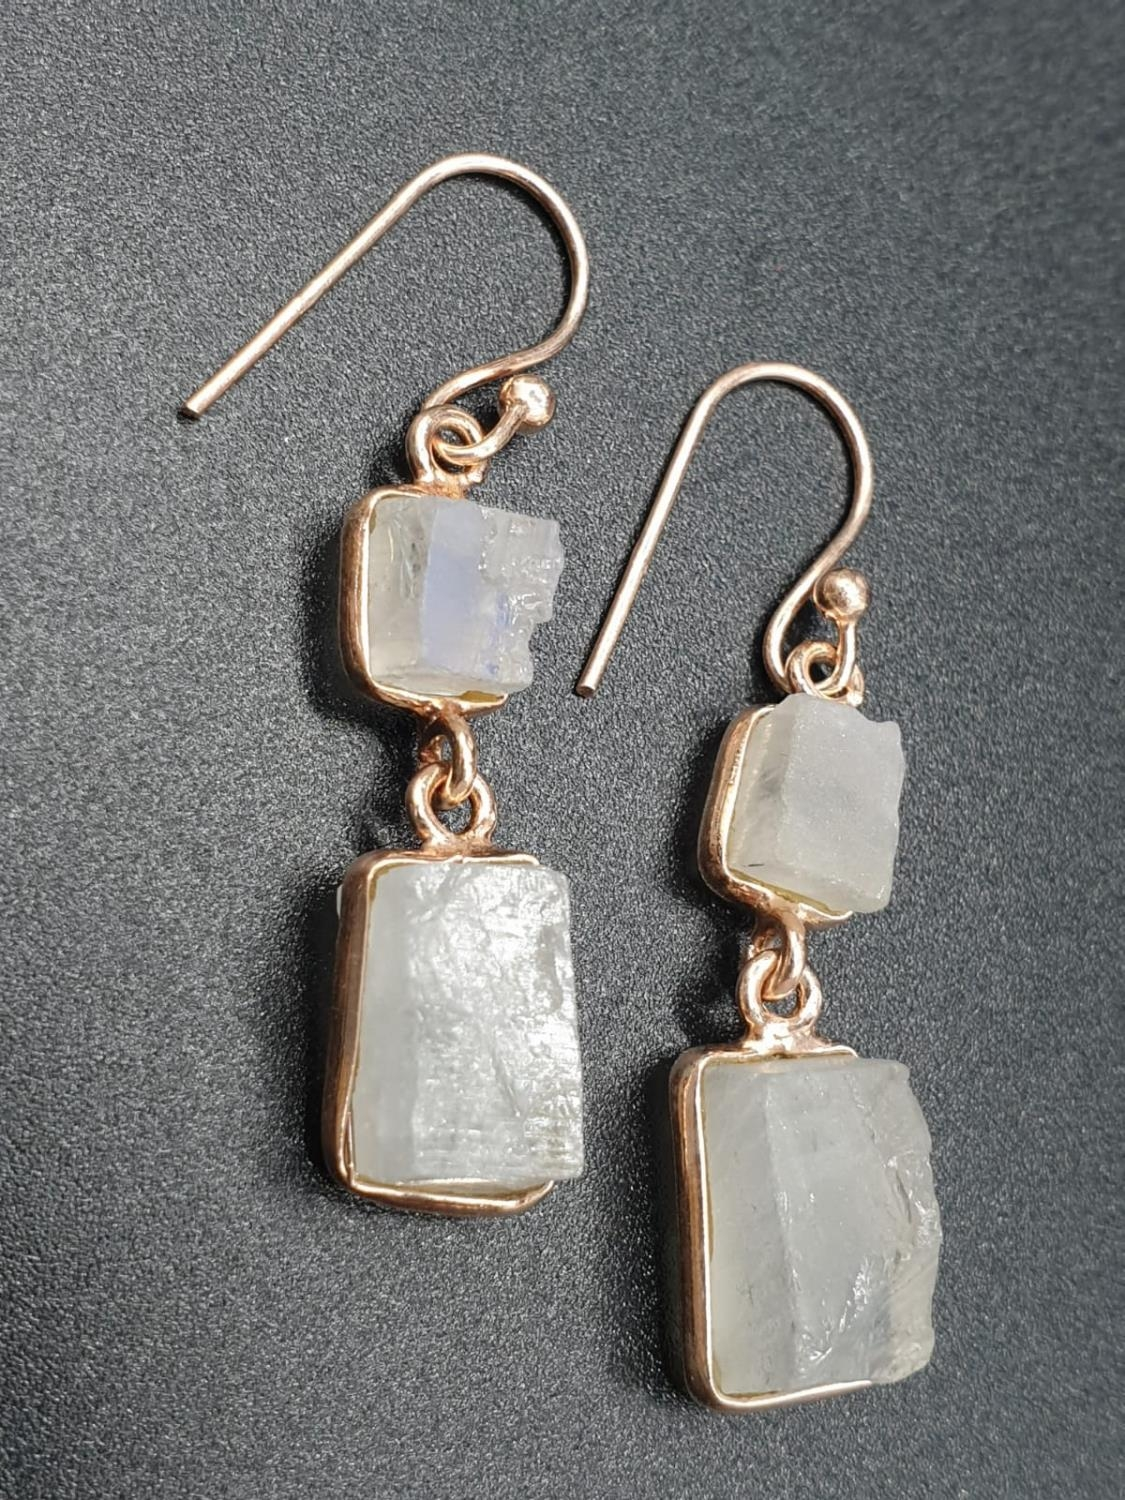 Rainbow Moonstone Bracelet with matching Raw Dangler Earrings in Sterling silver rose gold finish. - Image 2 of 5